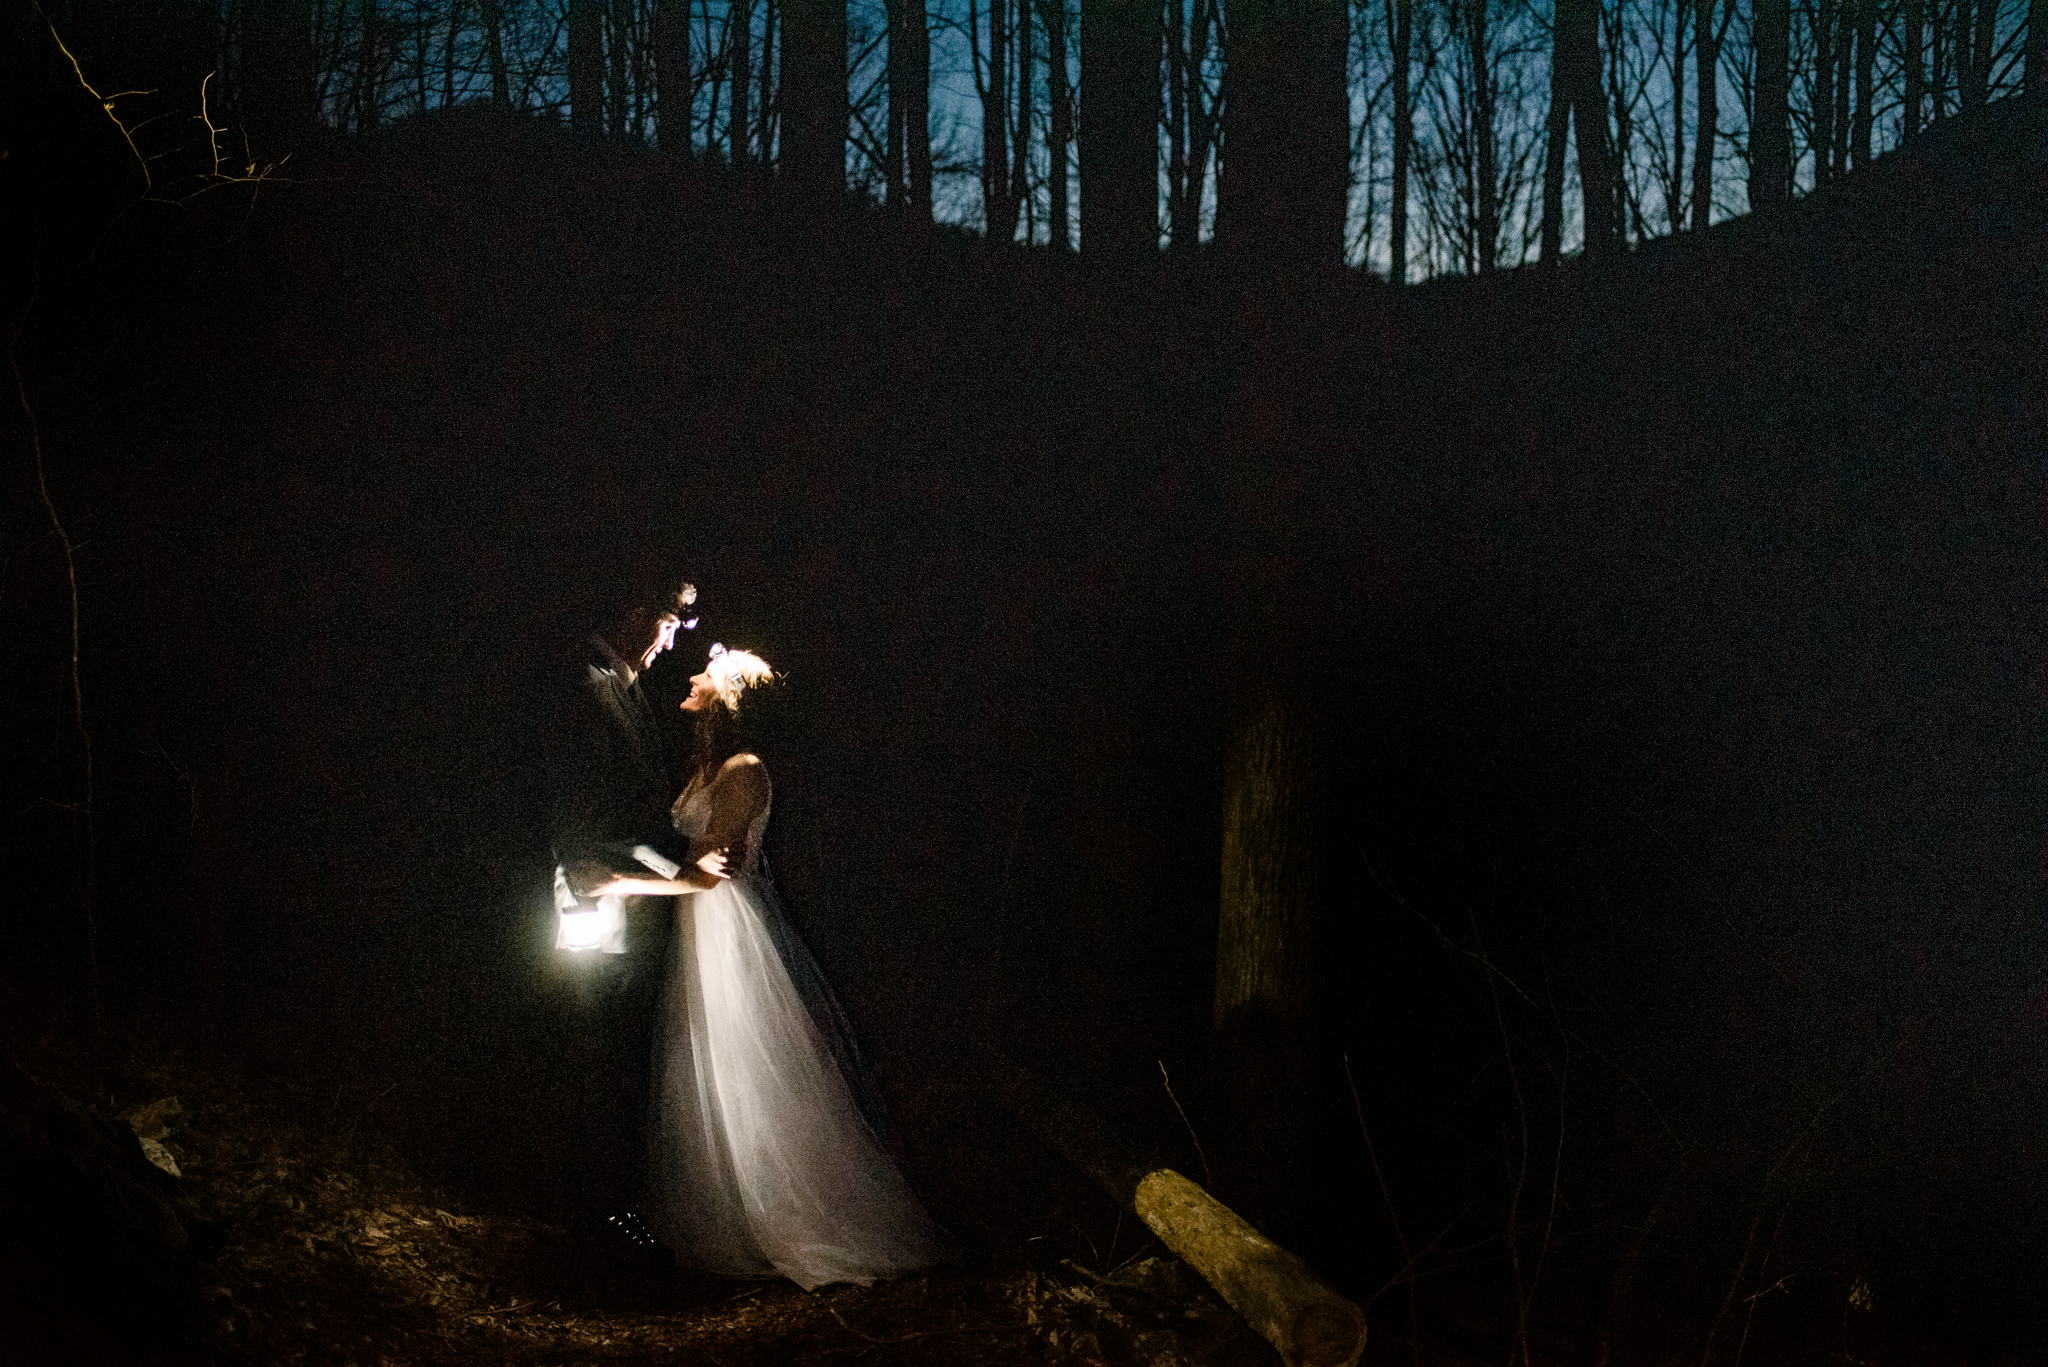 Stephanie and Steve - Shenandoah National Park Elopement - Sunrise Hiking Elopement - Adventurous Elopement - Virginia Elopement Photographer - Shenandoah national Park Wedding Photographer - White Sails Creative.jpg